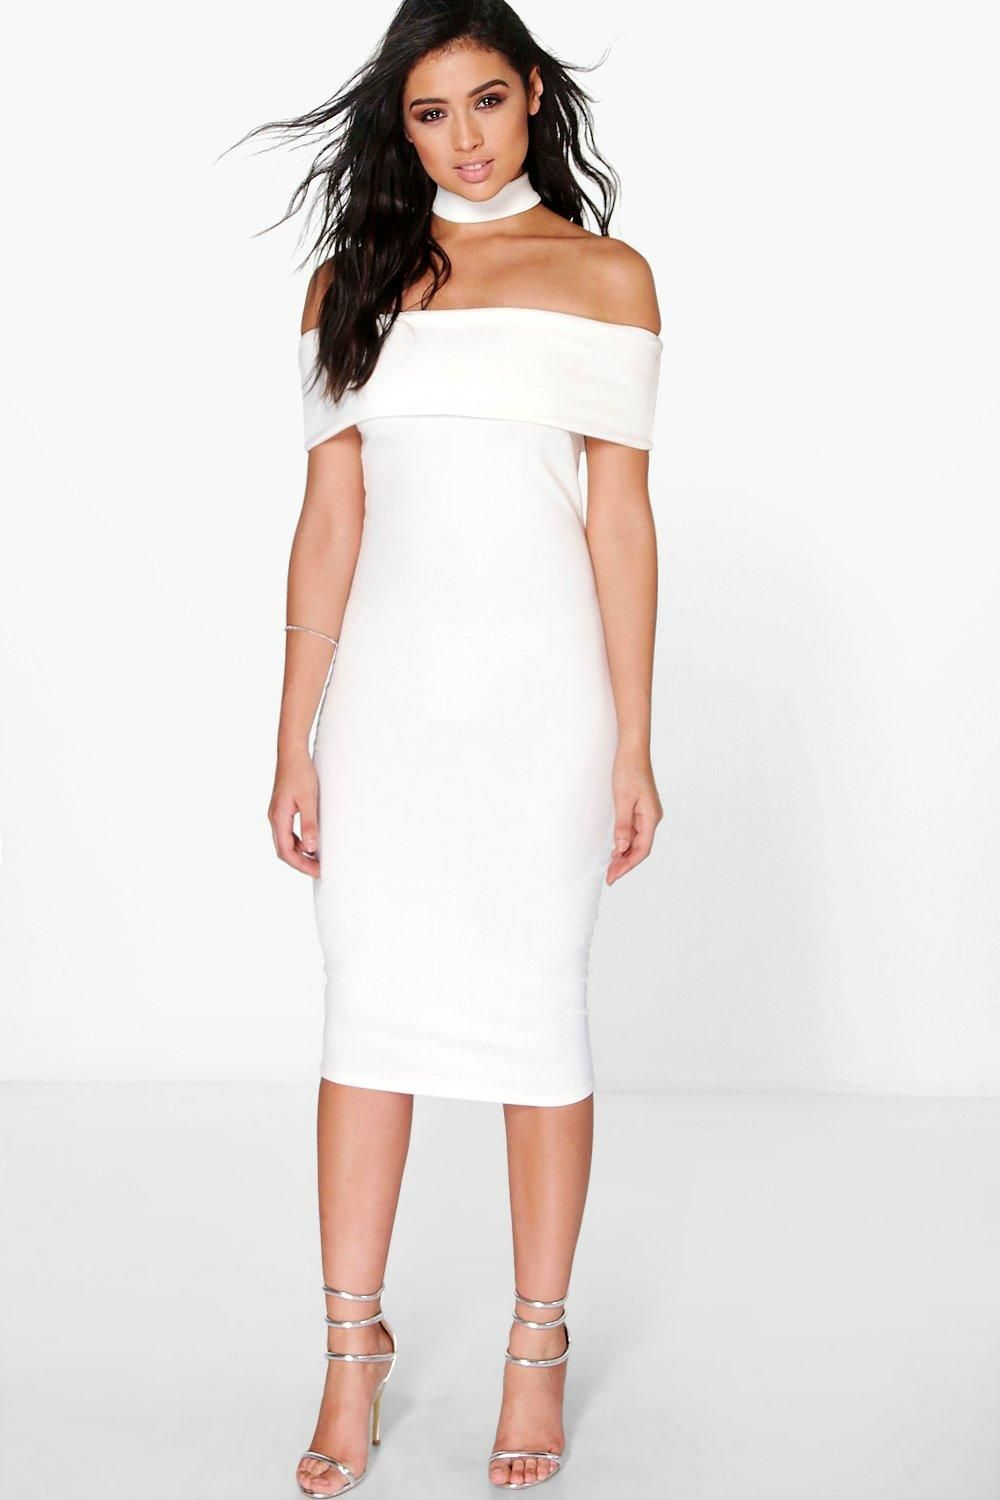 Bandage bodycon dresses 0 celebrities 1639 get lucky extra 50 0 - Fashion